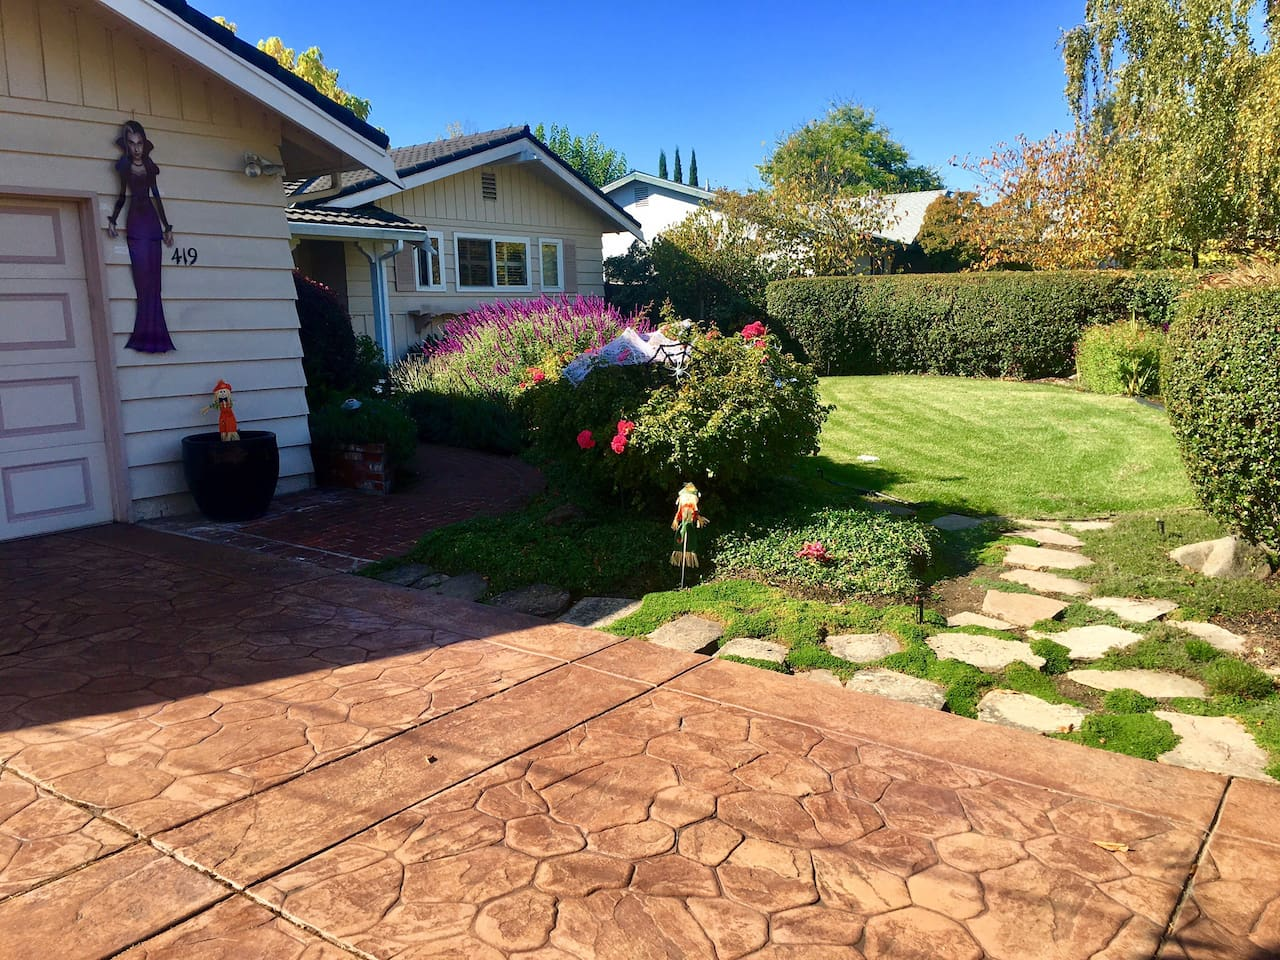 Driveway and front yard